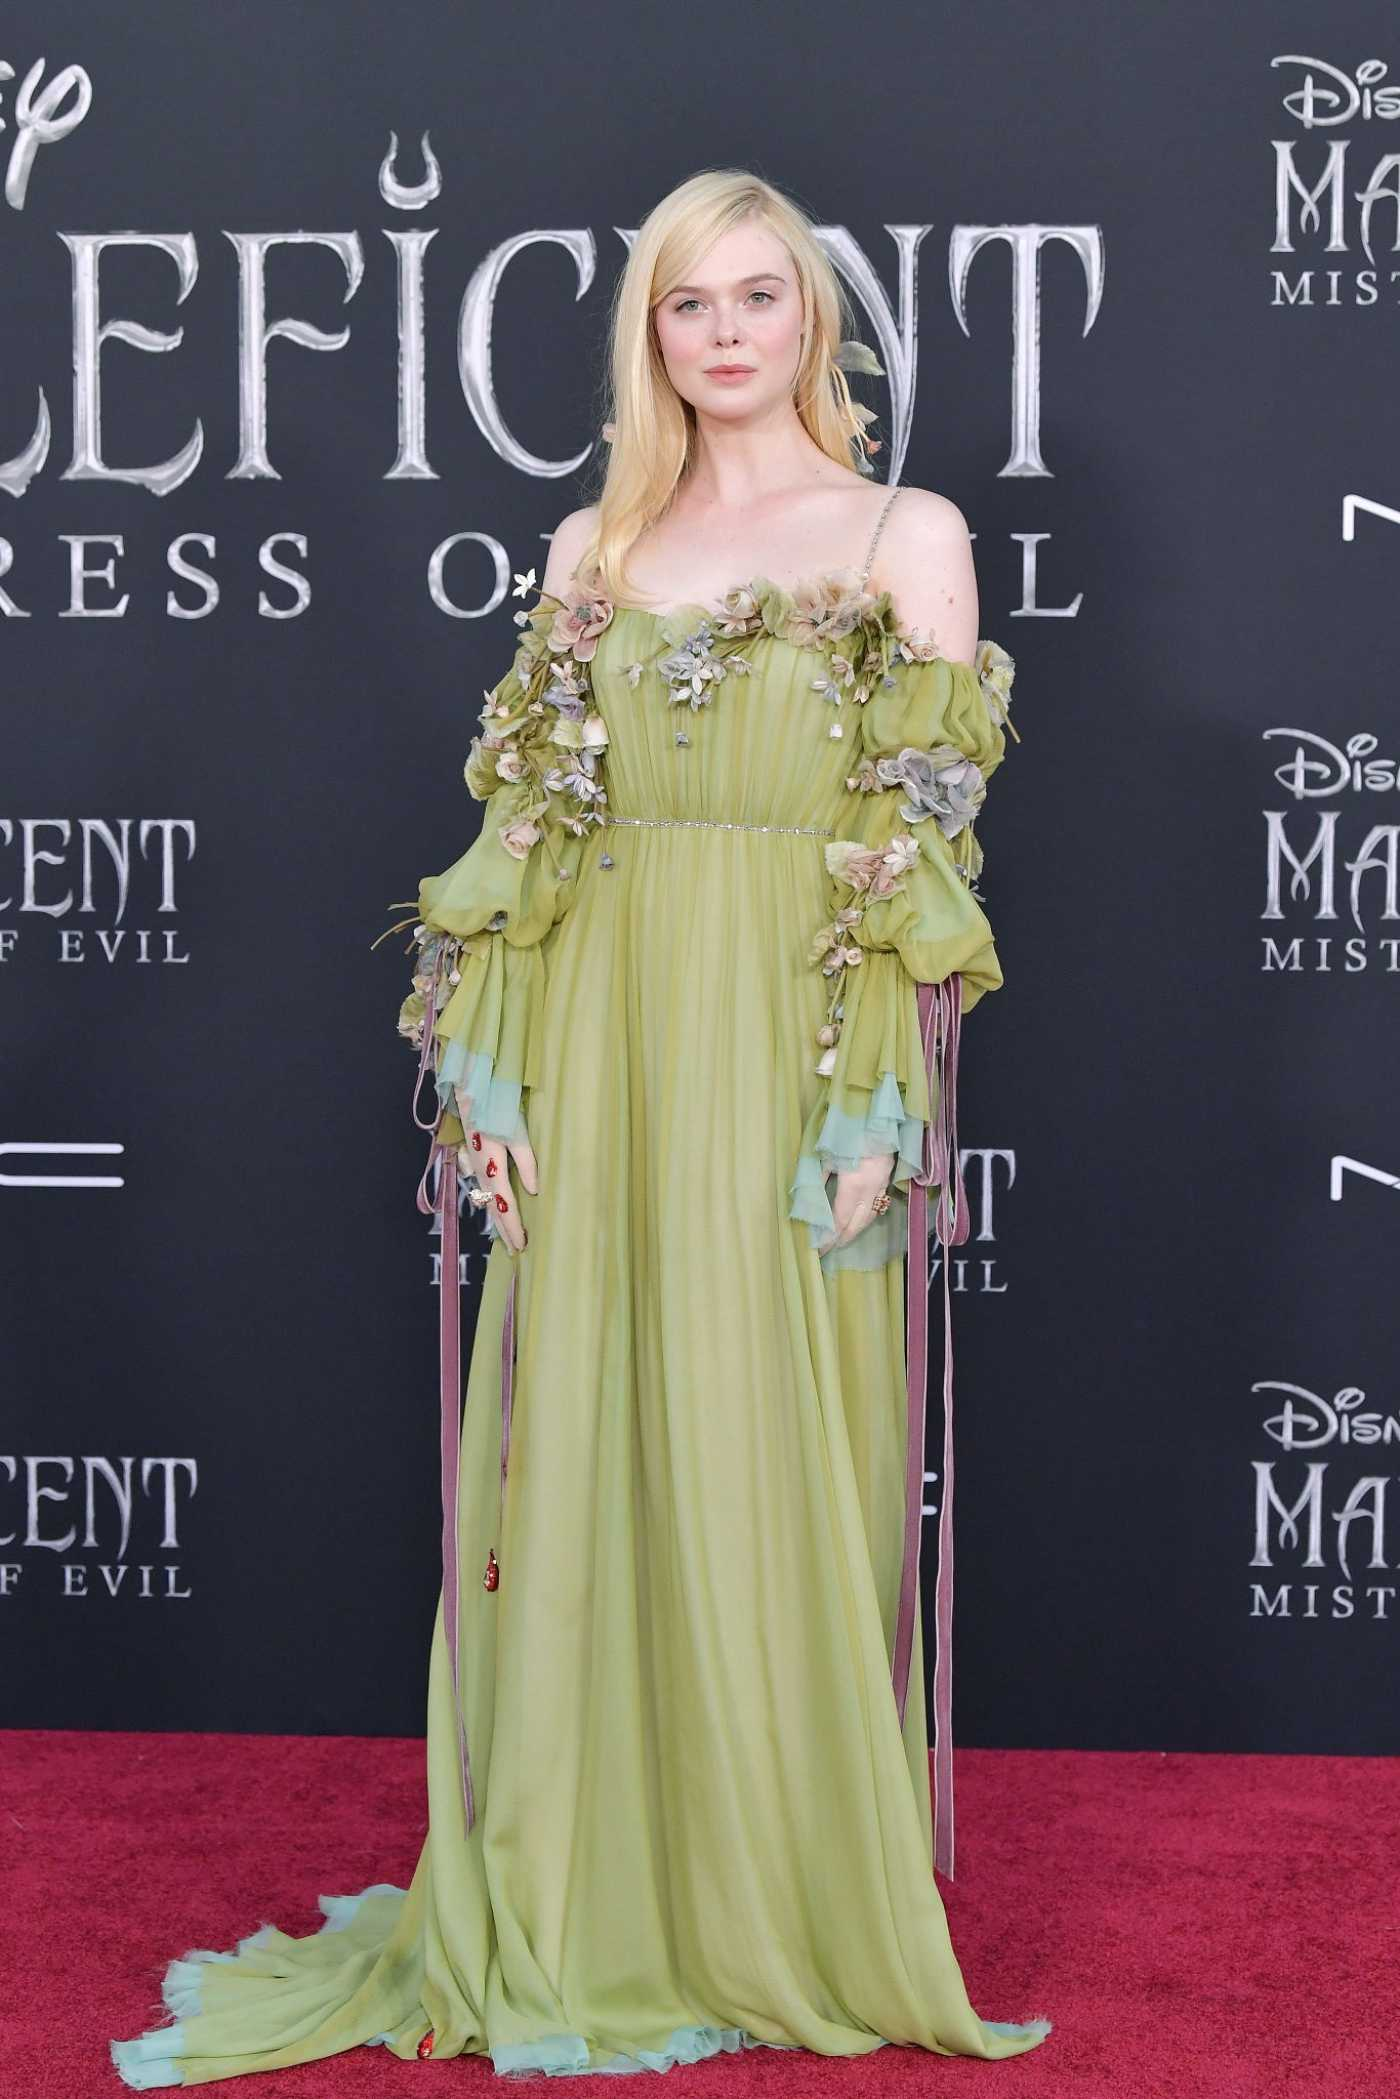 Elle Fanning Attends the Maleficent: Mistress of Evil Premiere at El Capitan Theatre in Los Angeles 09/30/2019